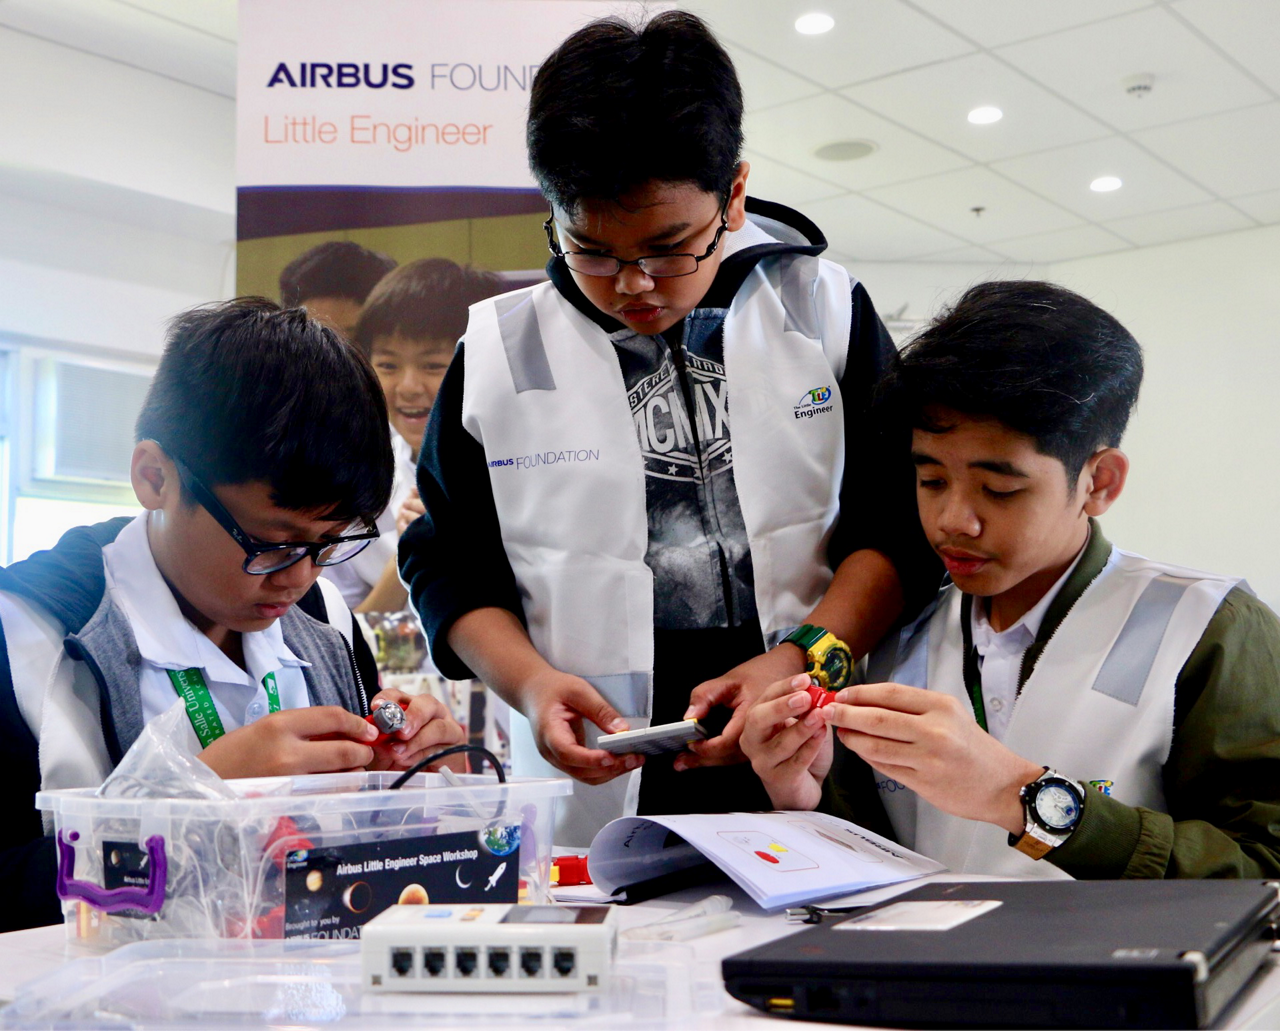 Three students collaborate during an Airbus Little Engineer workshop event in Singapore.